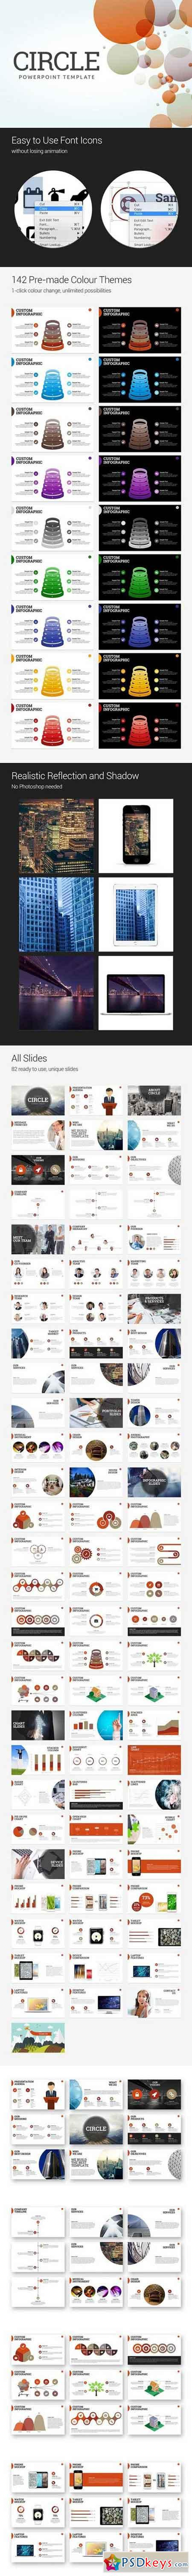 Circle- PowerPoint Template 704019